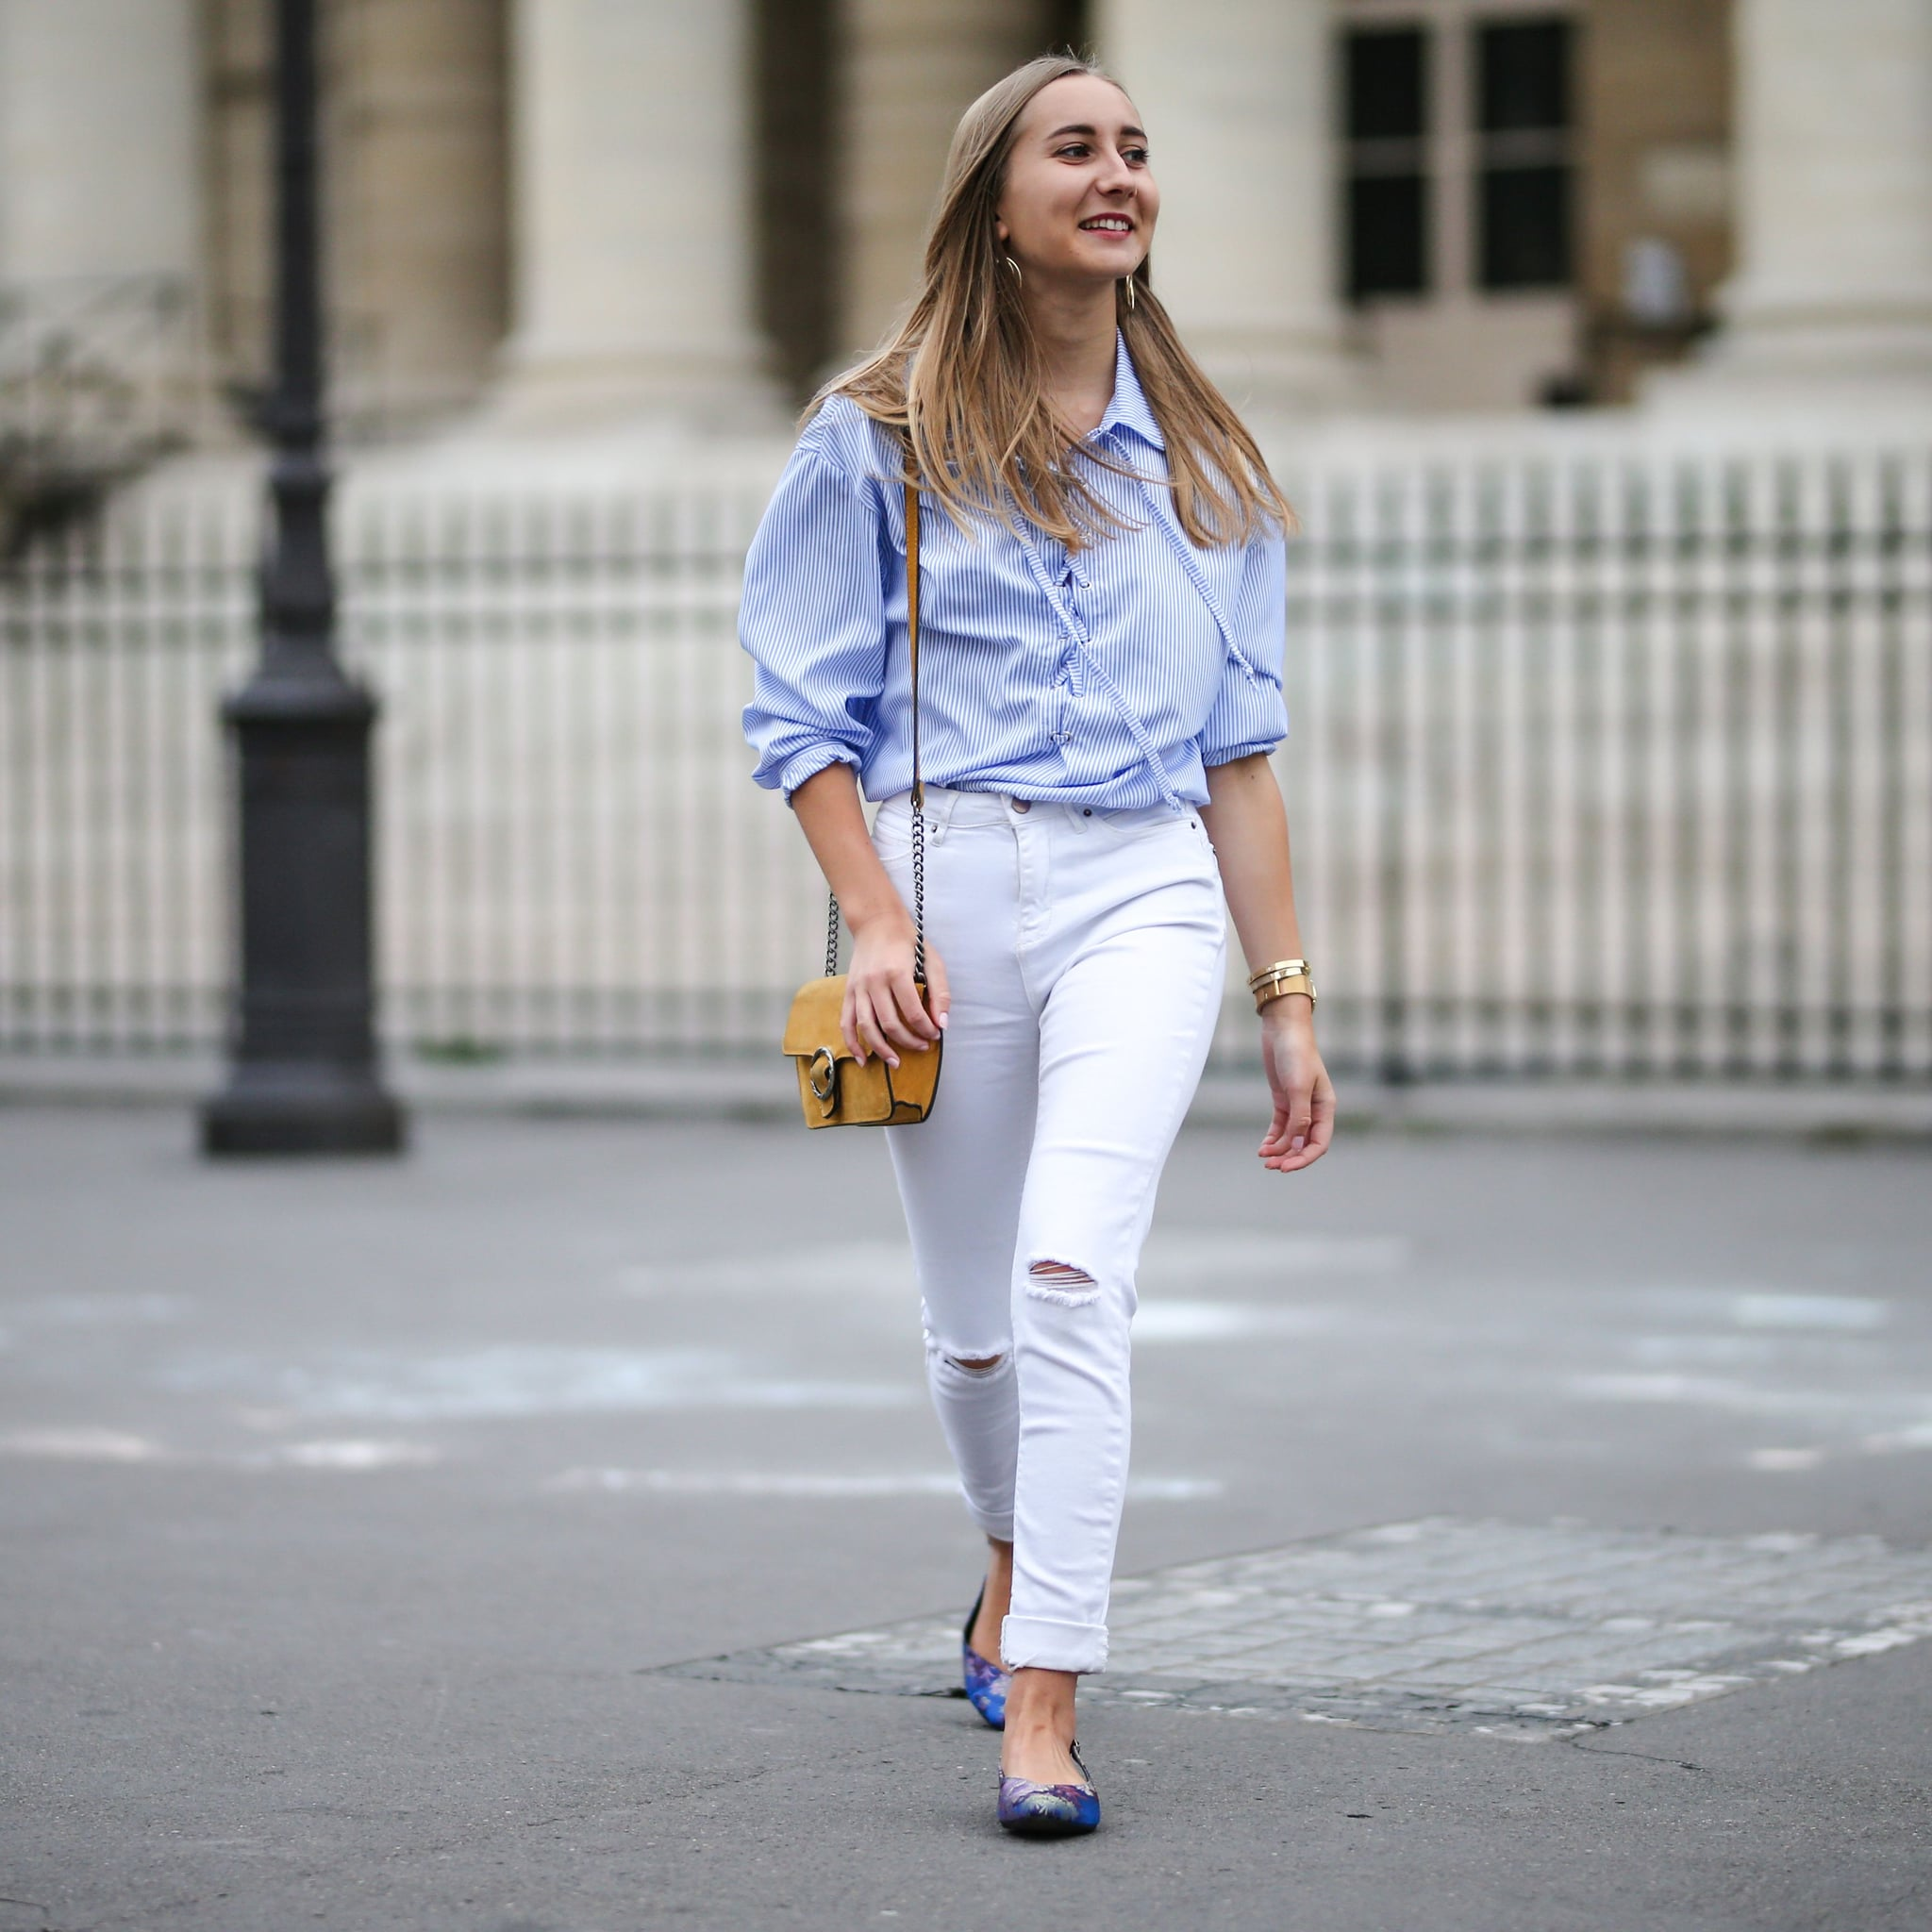 White Jeans Outfit Ideas Popsugar Fashion Australia